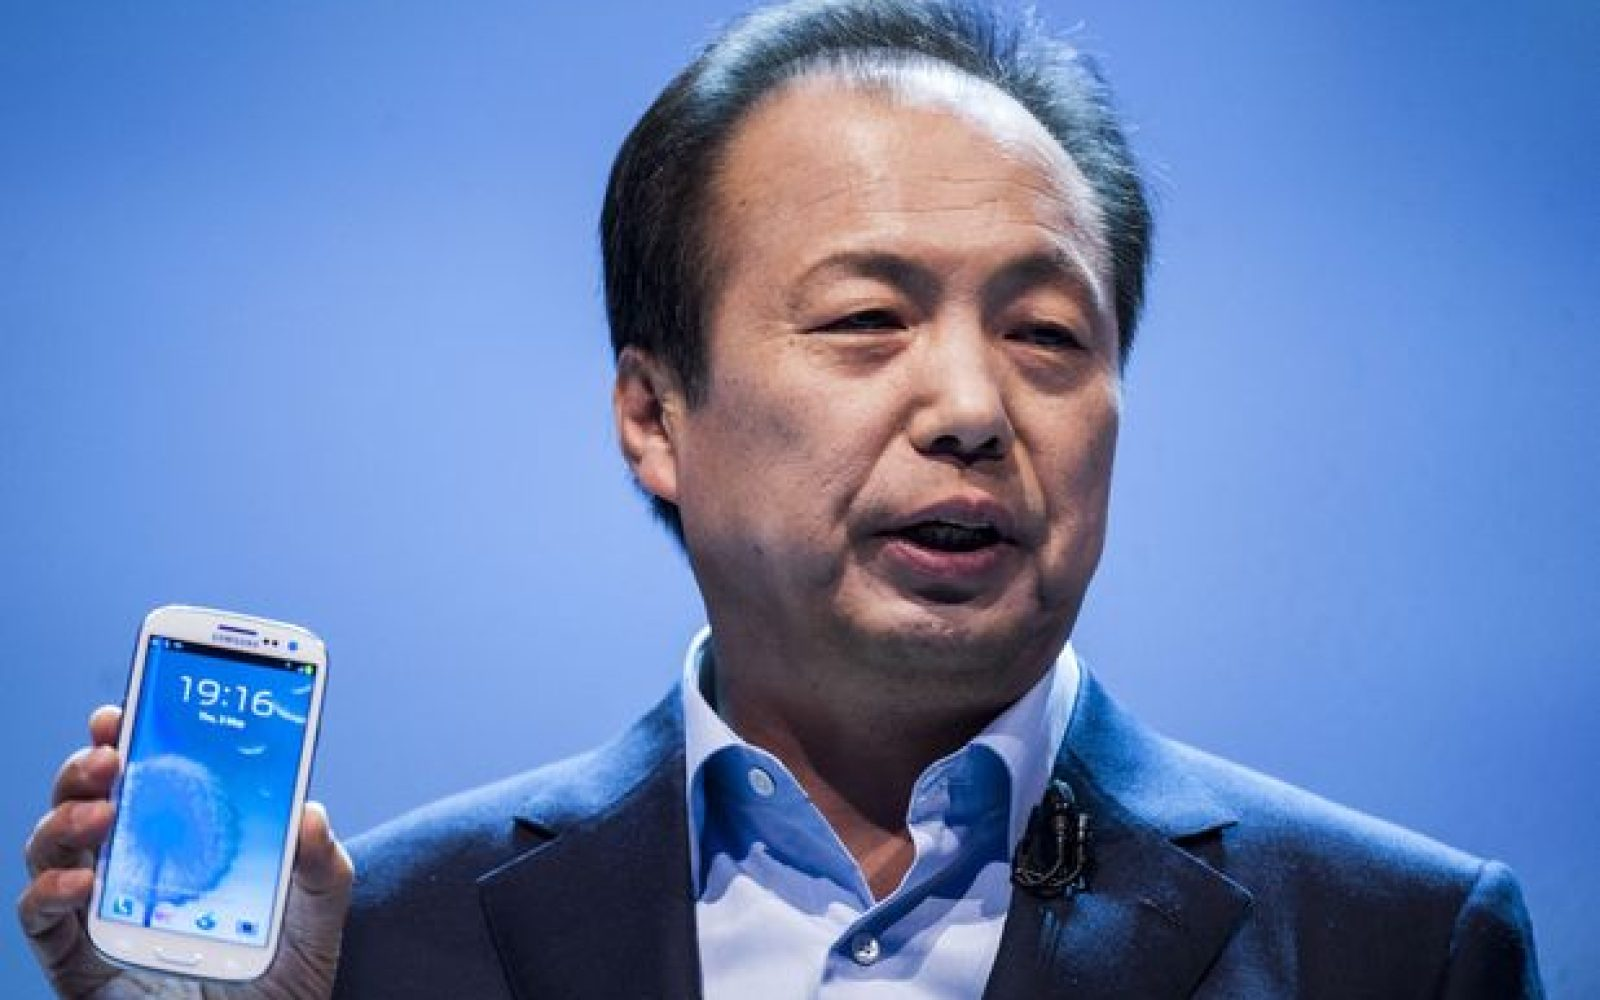 People want Android, not Windows Phone' says Samsung's Mobile Chief